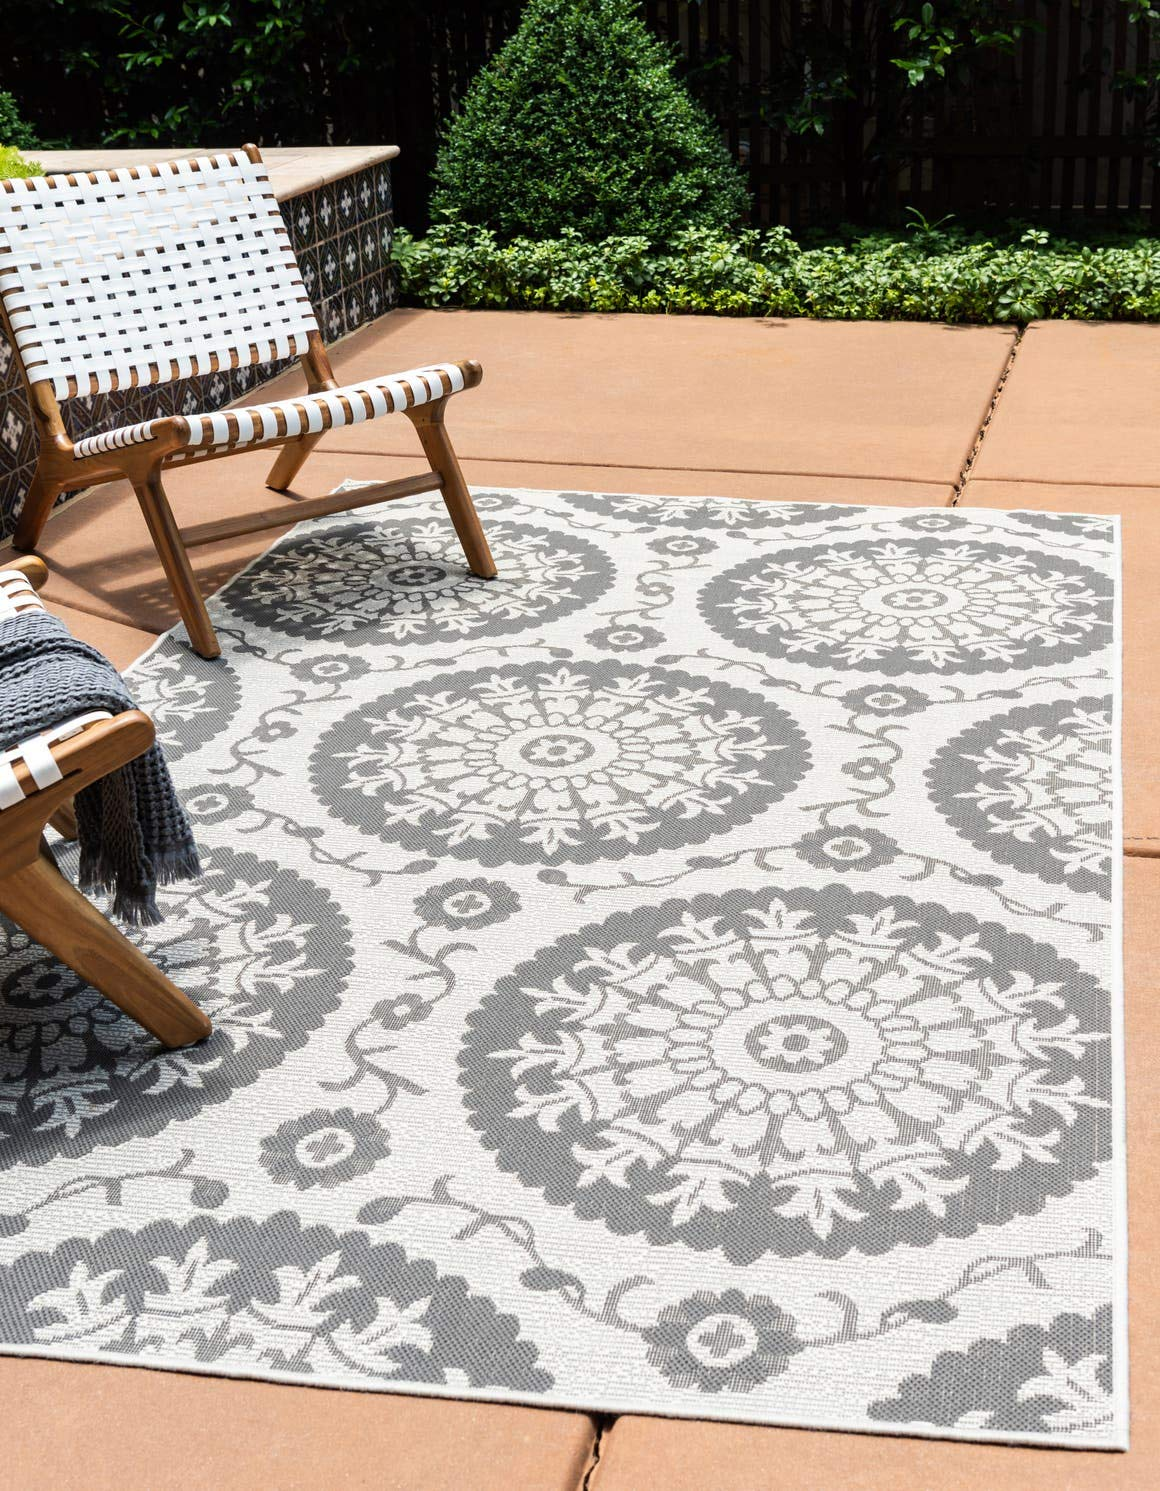 Unique Loom Outdoor Botanical Collection Floral Abstract Transitional Indoor and Outdoor Flatweave Gray Area Rug 3 3 x 5 0